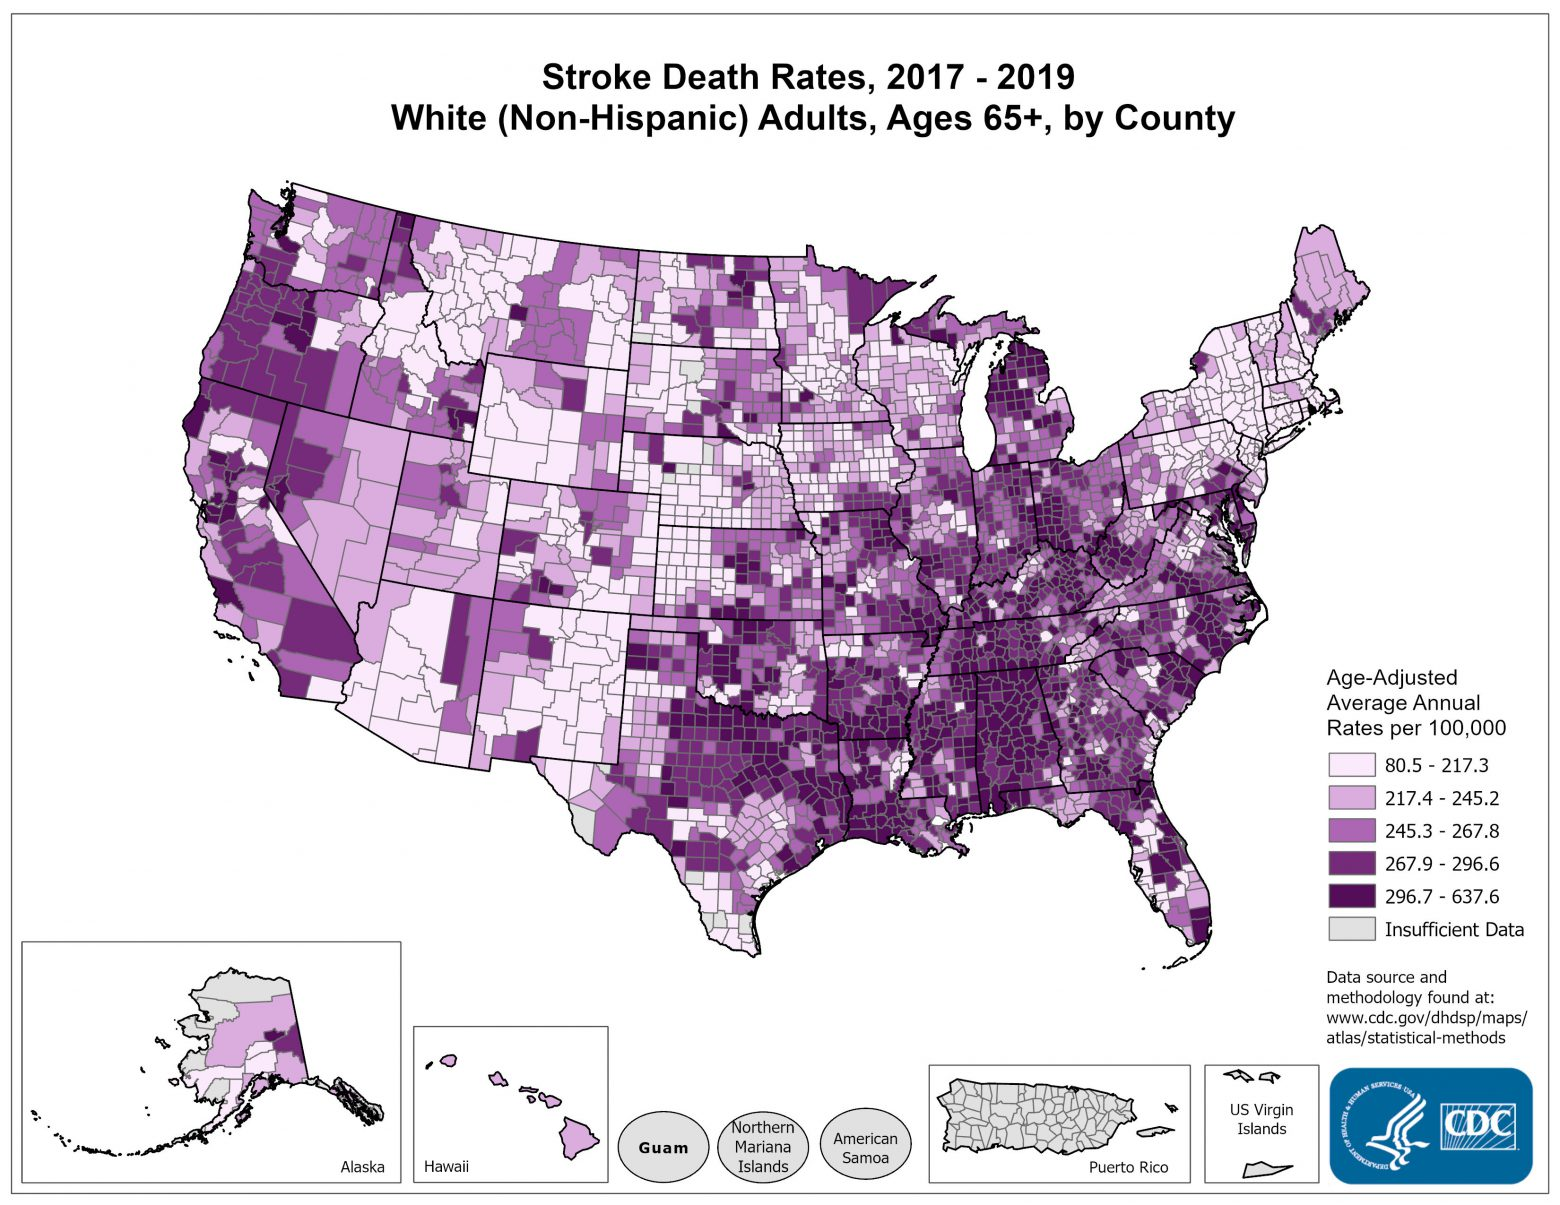 Stroke Death Rates for 2014 through 2016 for Whites Aged 65 Years and Older by County. The map shows that concentrations of counties with the highest stroke death rates - meaning the top quintile - are located primarily in the Southeast, with heavy concentrations of high-rate counties in Arkansas, West Virginia, and Kentucky. Pockets of high-rate counties also are found in Tennessee, Alabama, Louisiana, Mississippi, Oklahoma, North Dakota, South Dakota, Montana, Ohio, Michigan, northern Idaho, and the coastal plains of North Carolina, South Carolina, and Georgia.